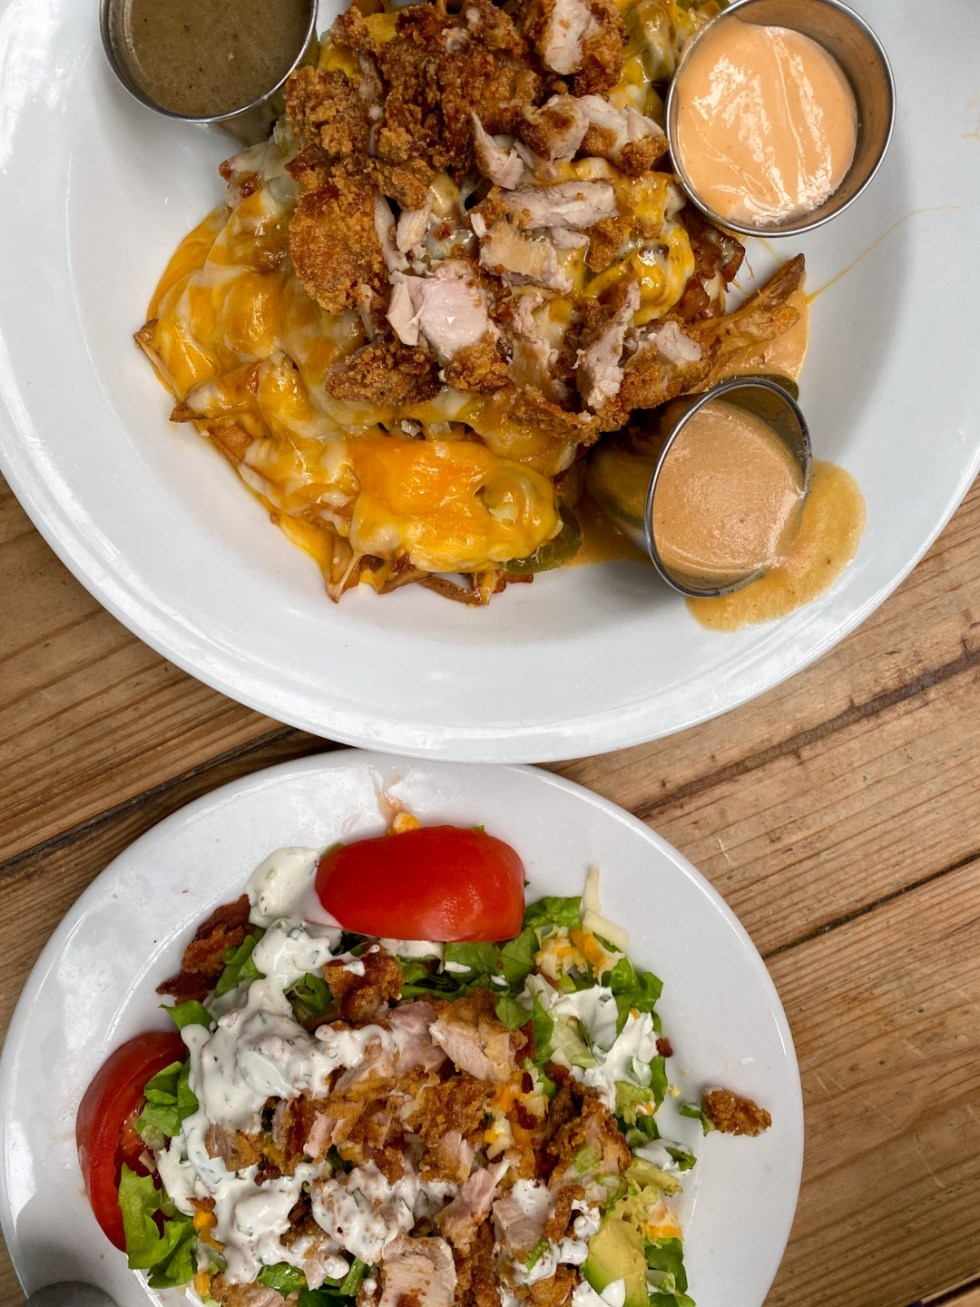 23 Awesome Things To Do in Durham - I'm Fixin' To - @imfixintoblog | Things to do in Durham by popular NC travel blog, I'm Fixin' To: image of cheese fries and a salad with tomatoes, bacon, and blue cheese dressing.